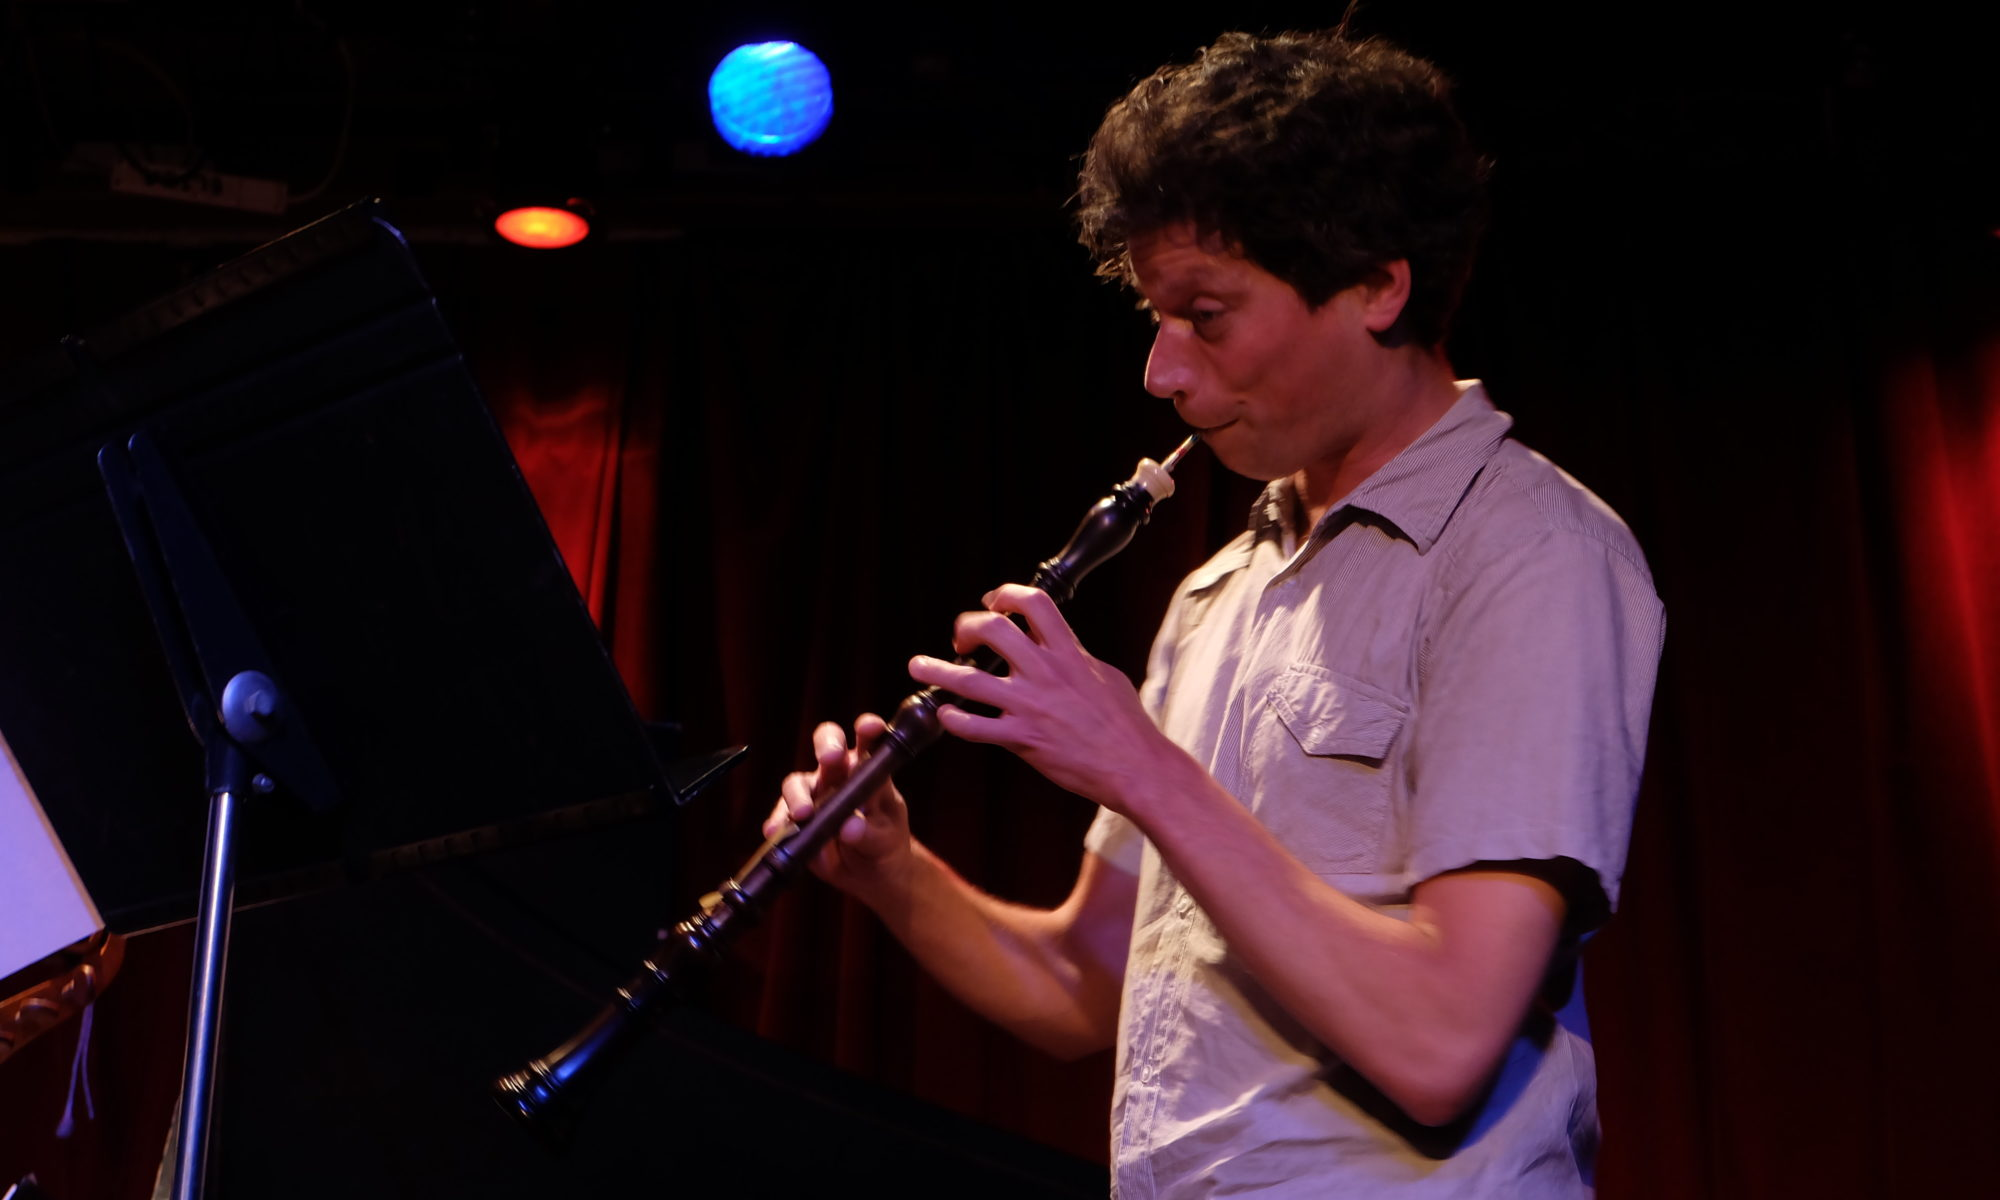 Floris and the Baroque Oboe